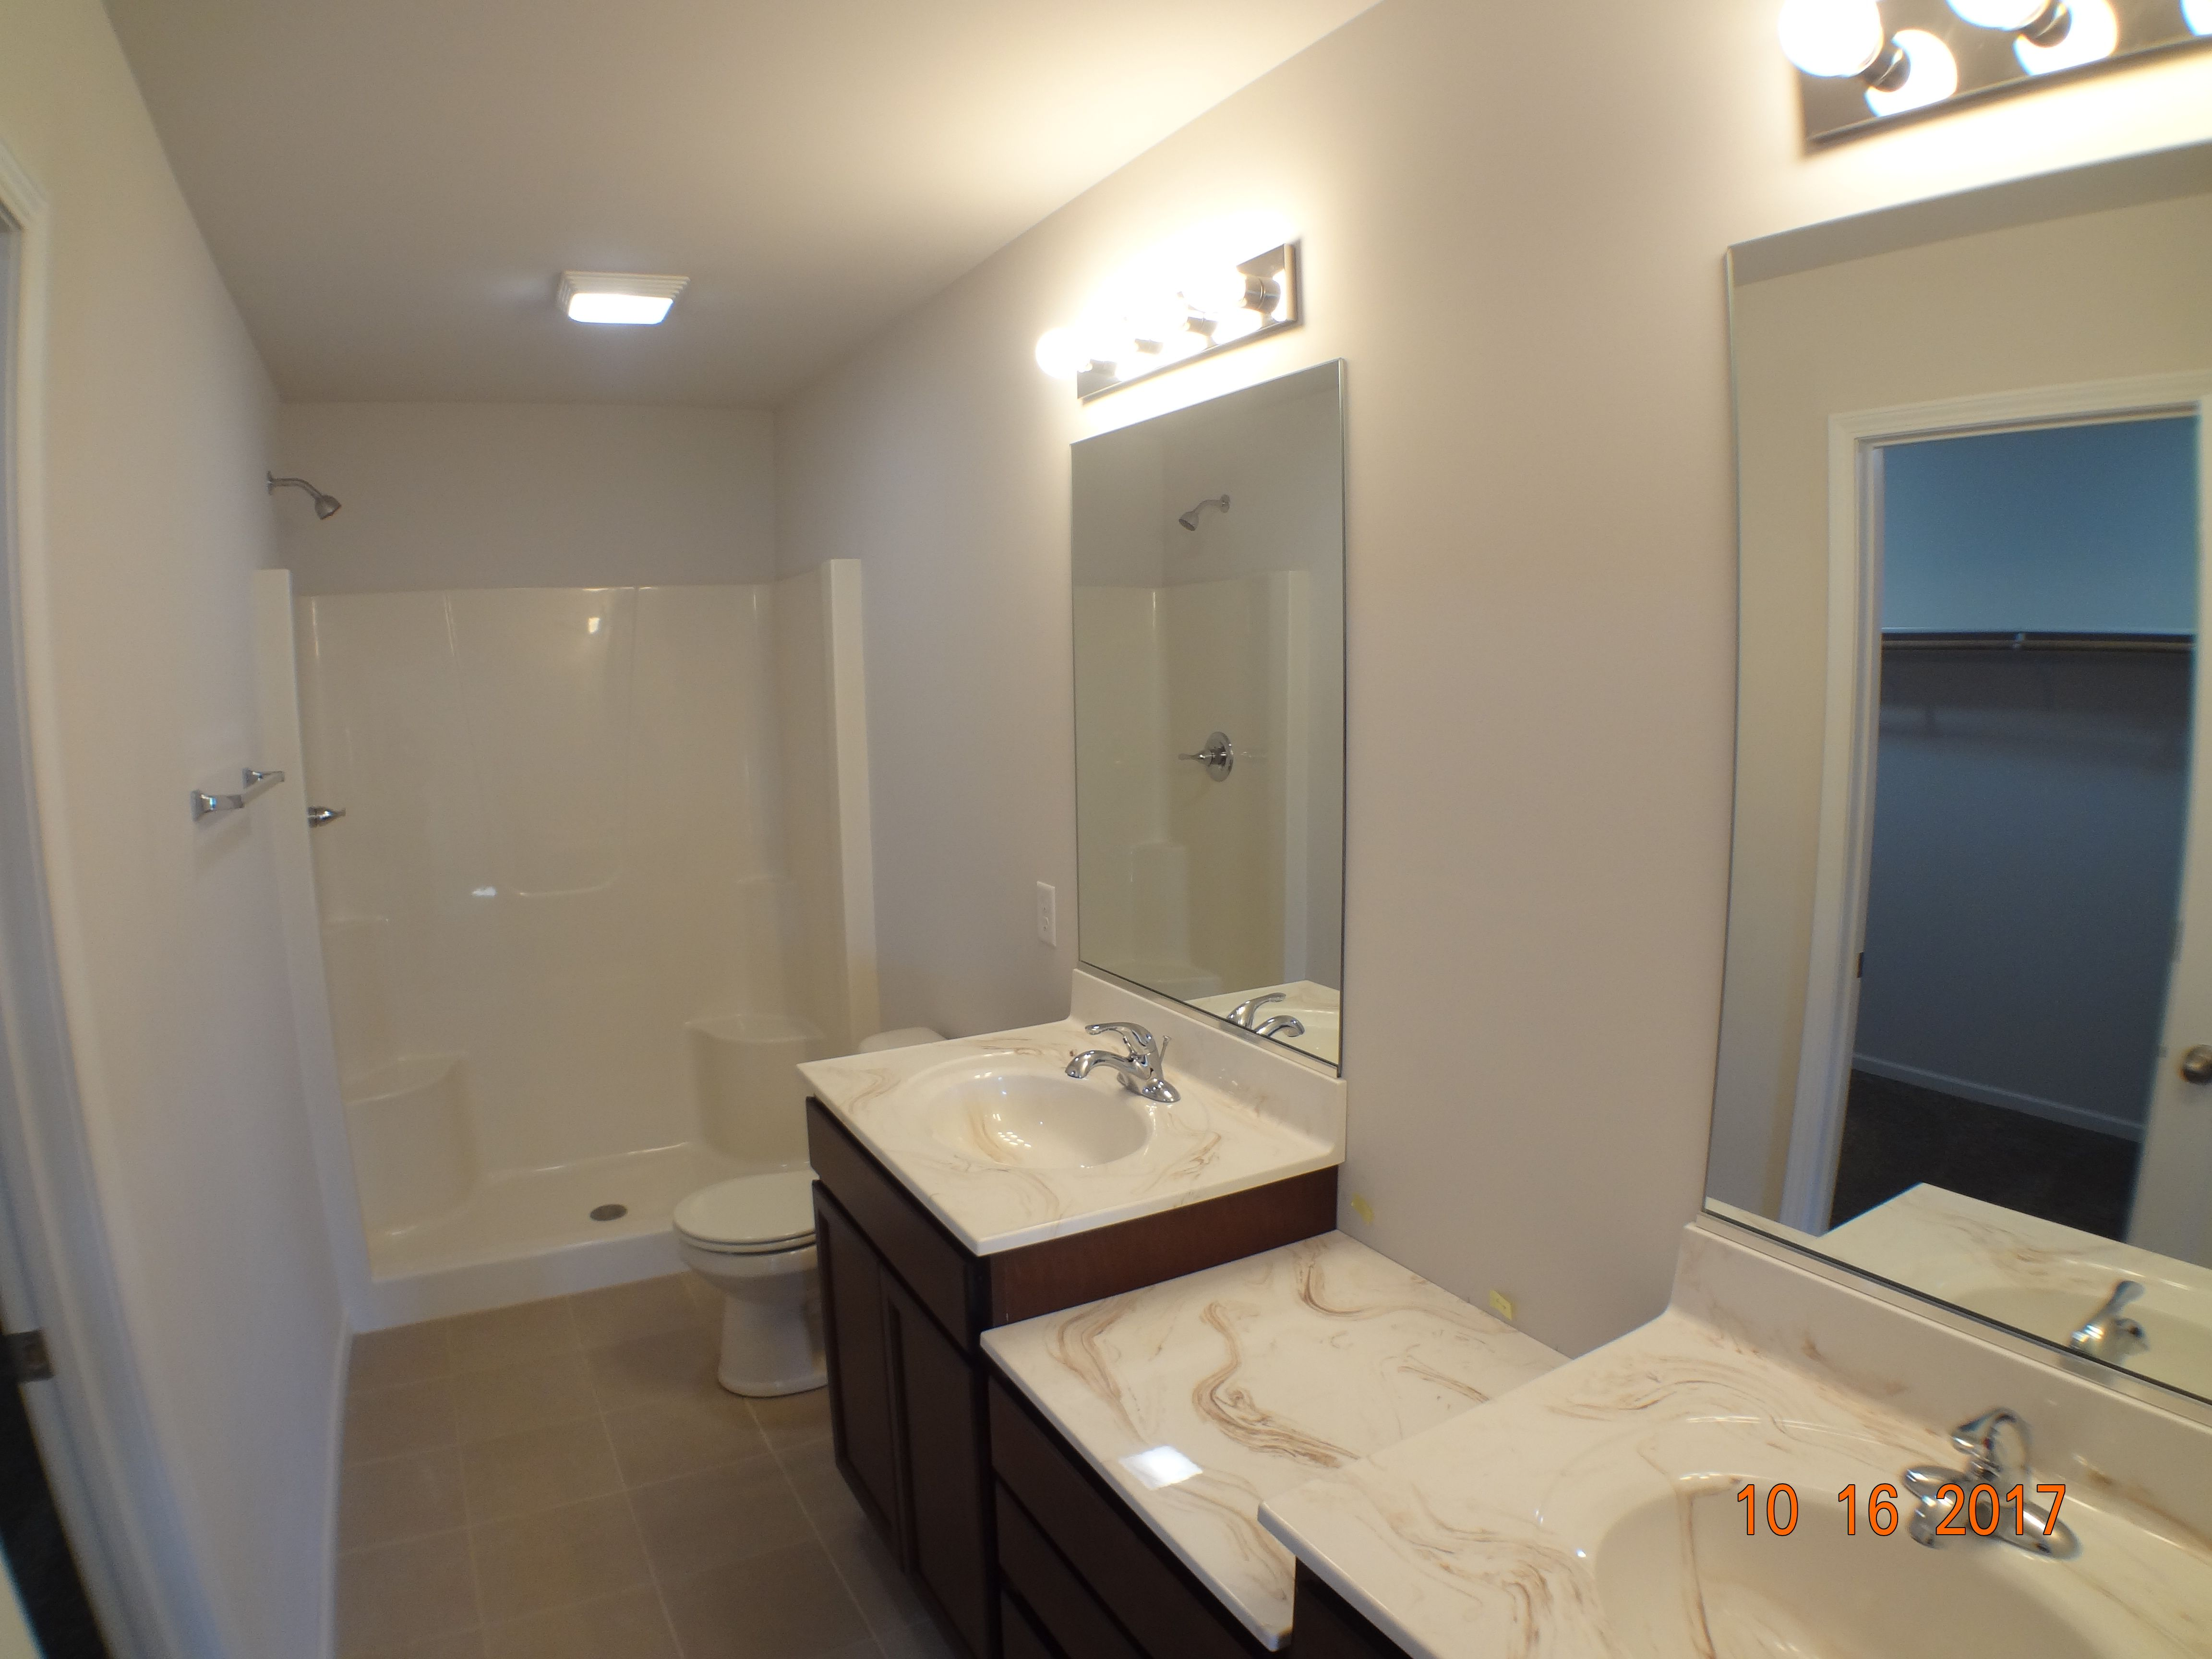 Bathroom featured in the Sophia B By Accent Homes Inc. in Gary, IN